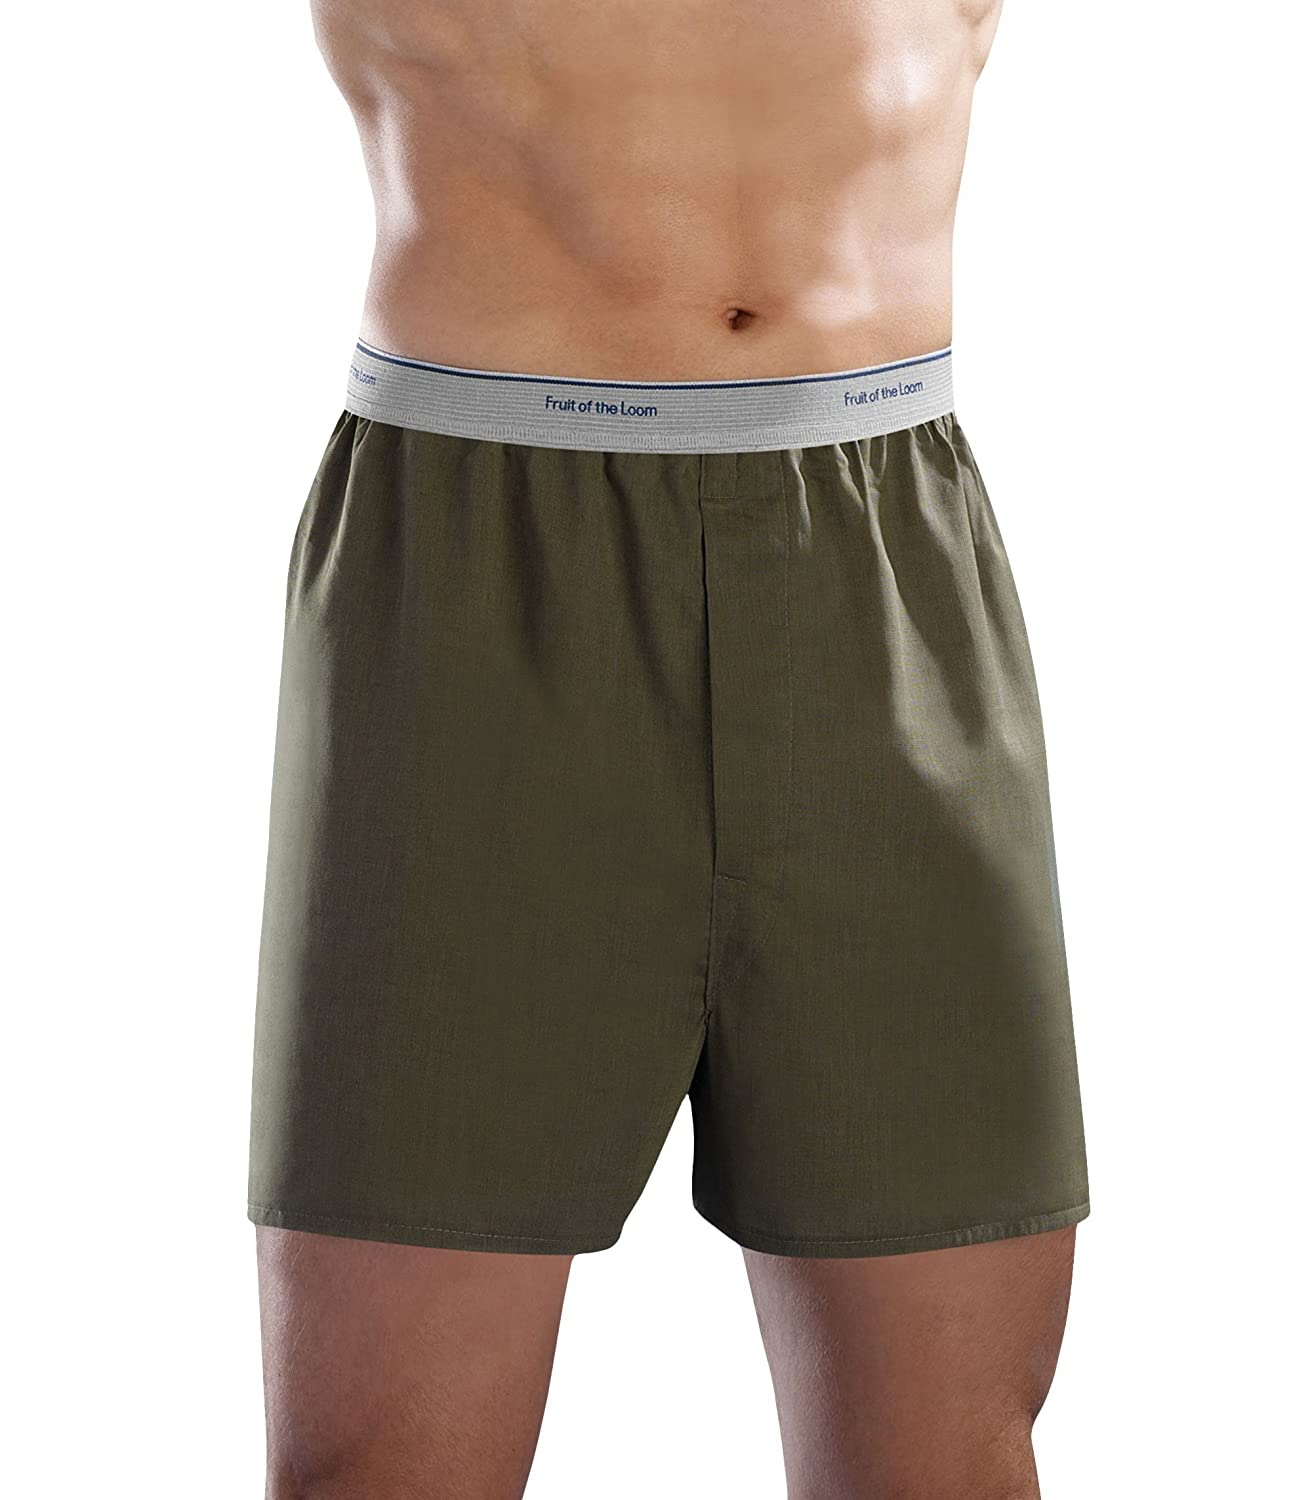 pin made em comforter down intense seriously these lock products boxers for were boxer sports comfortable